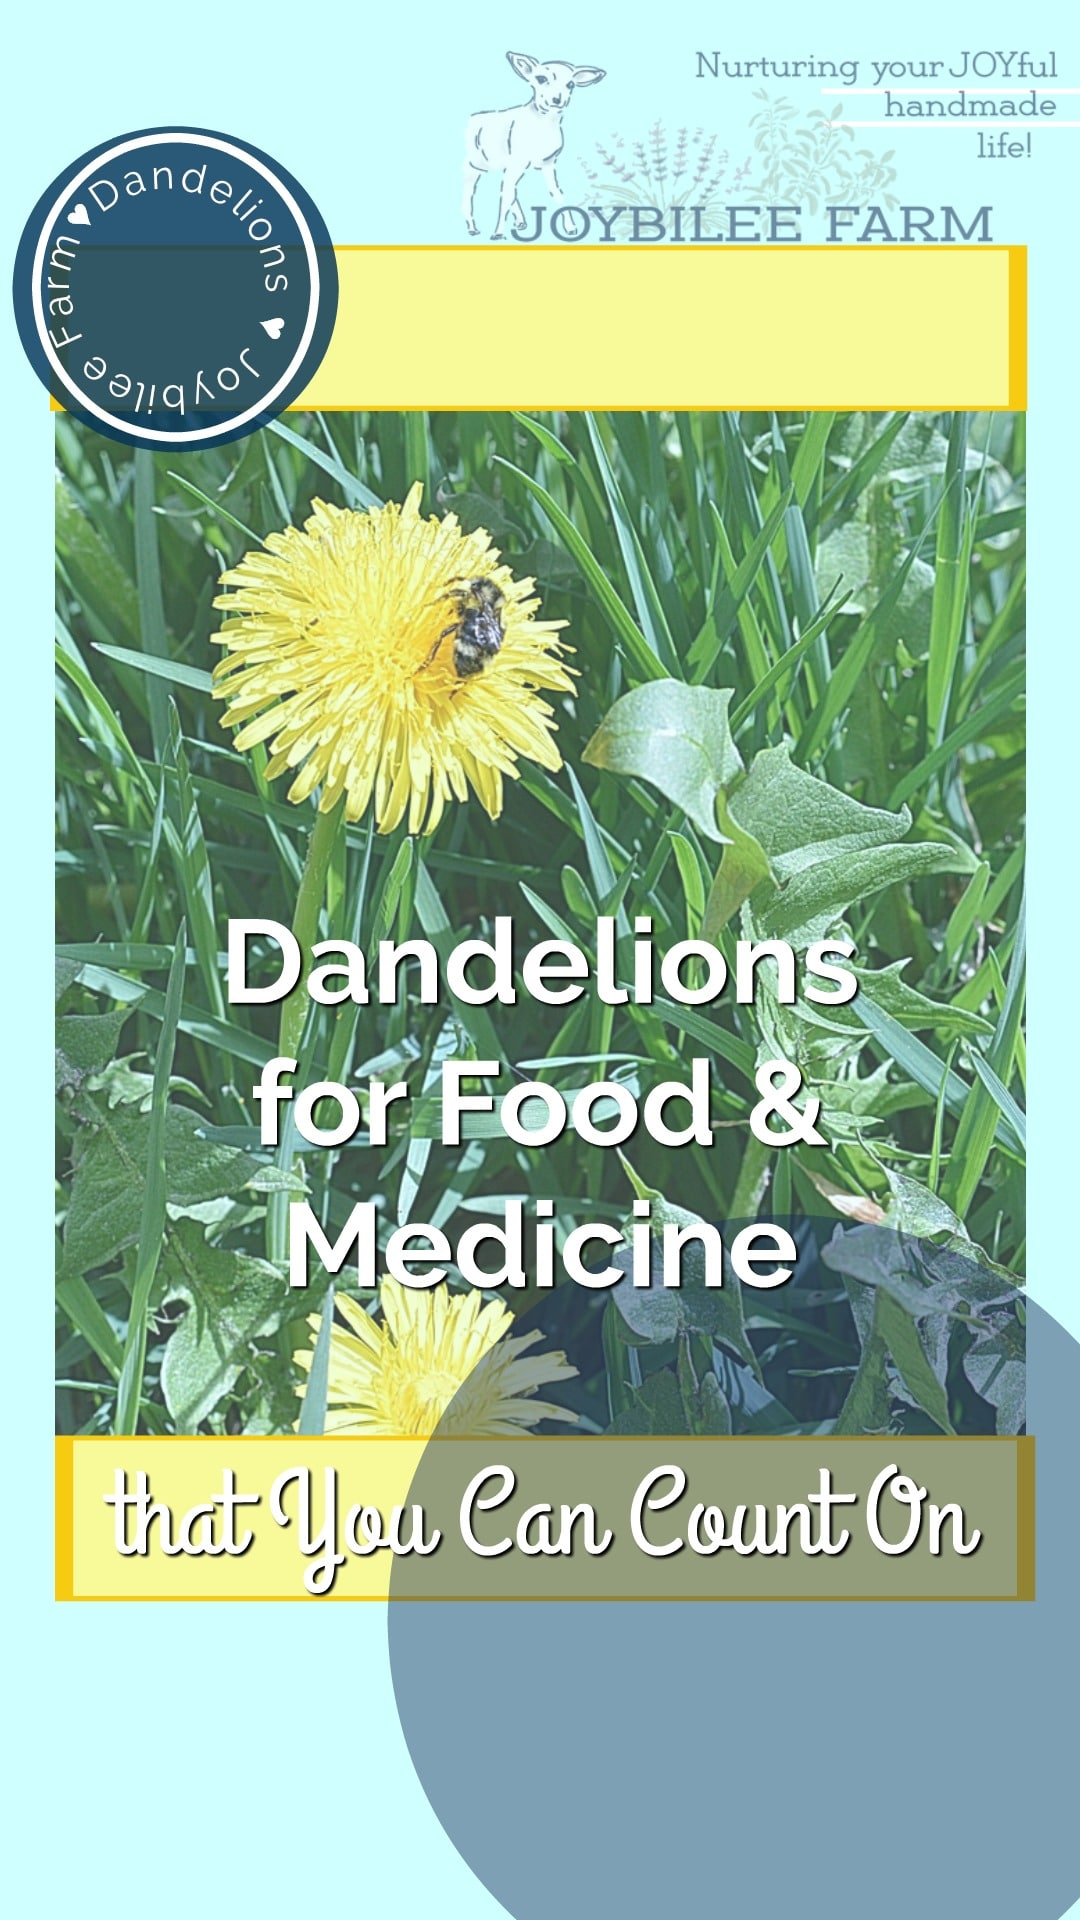 """dandelion with a bee on it and the text """"dandelions for food and medicine tht you can count on"""""""